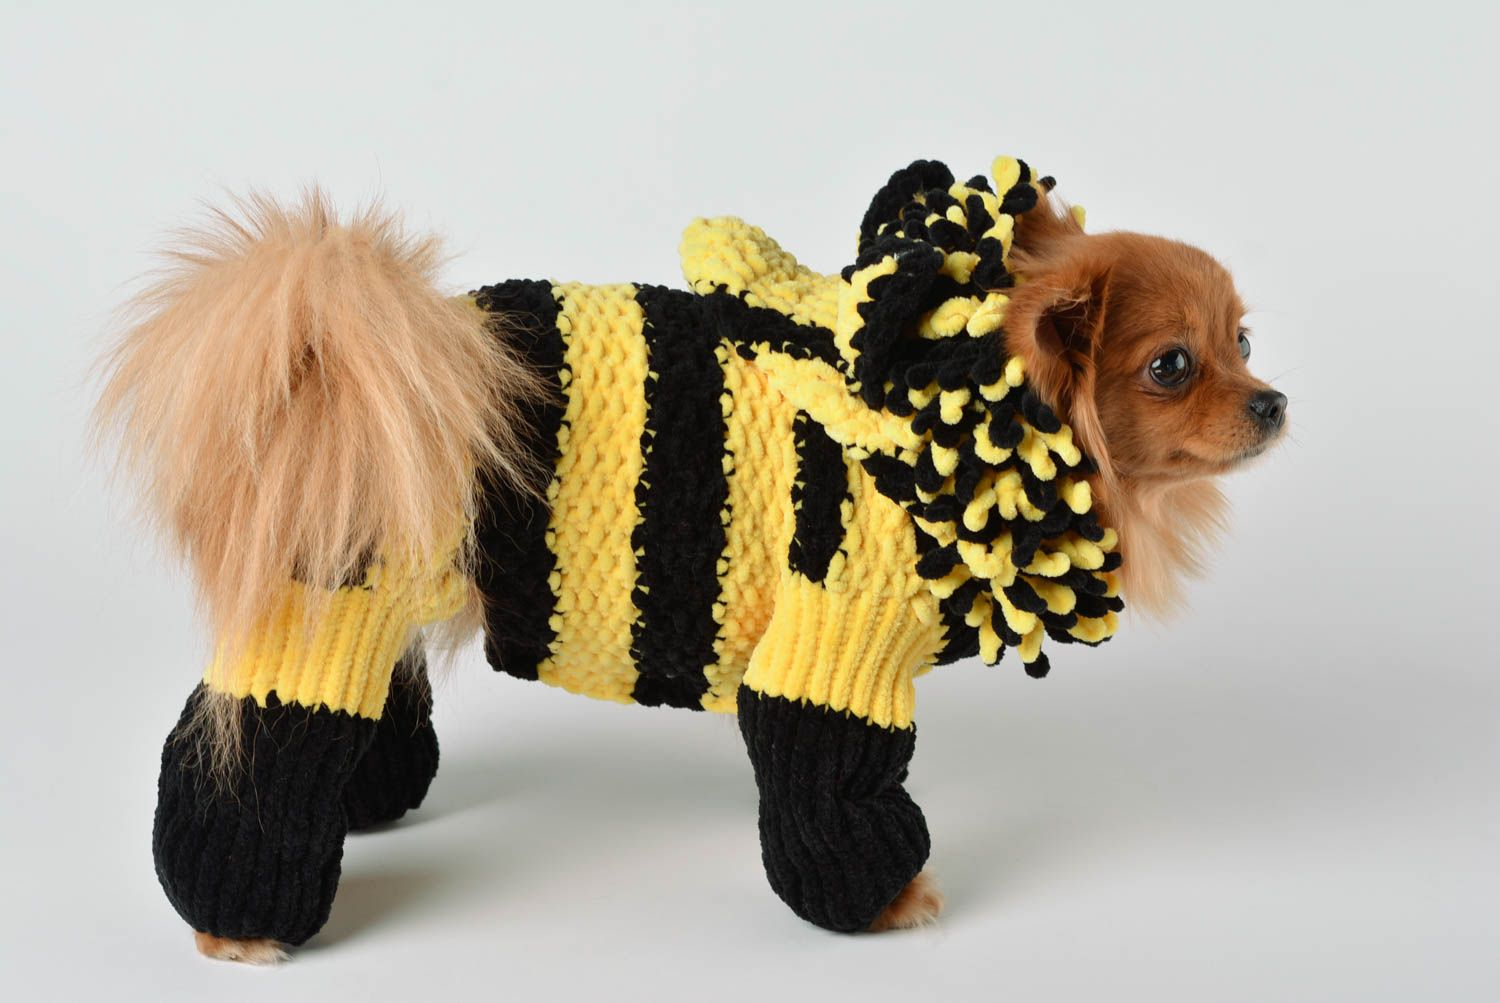 Handmade knitted suit for dogs bright designer clothes for pets cute accessory photo 3